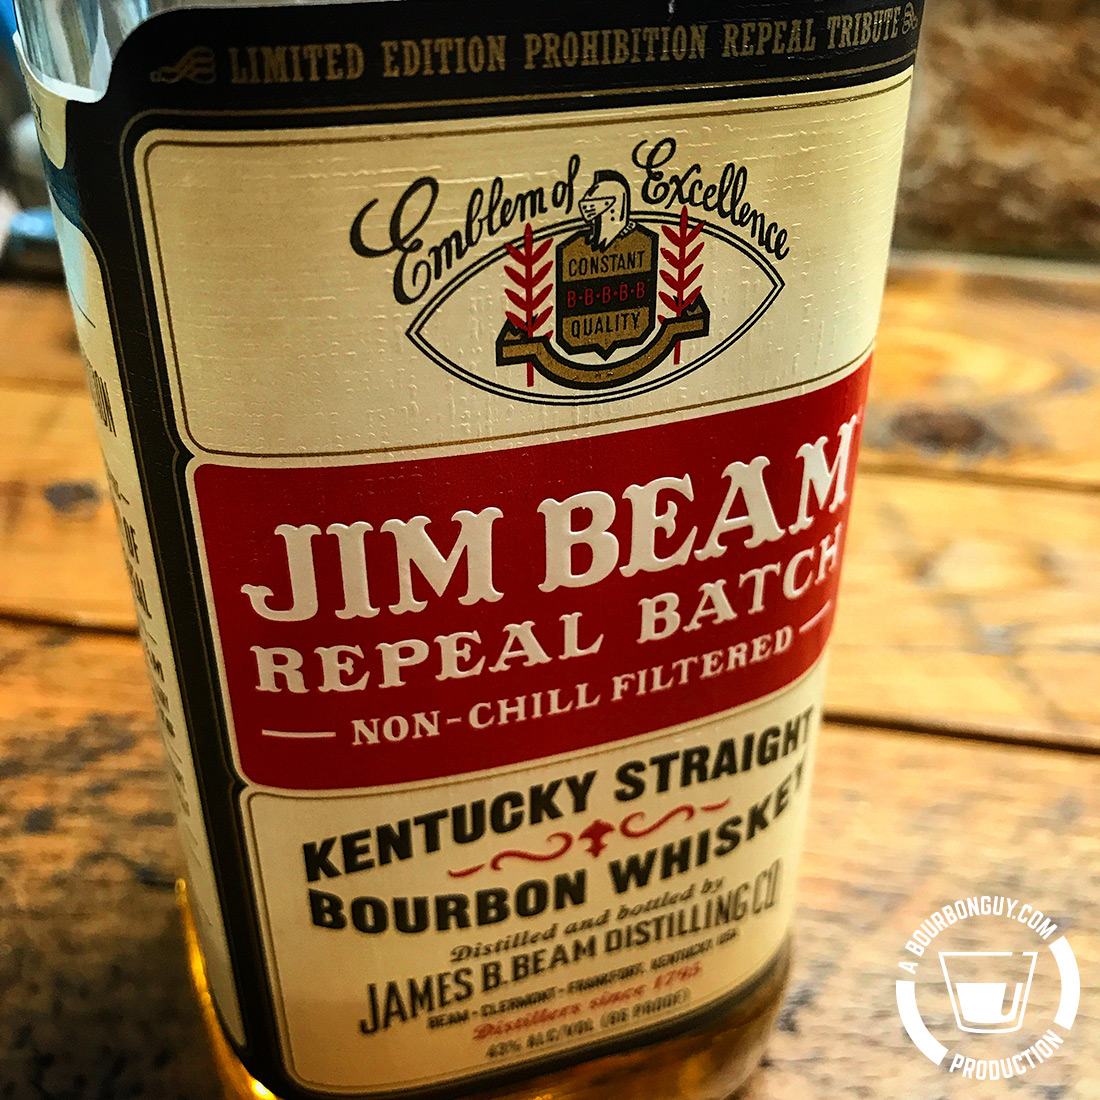 """IMAGE: The front label of Jim Beam Repeal batch. Copy says (from top to bottom): """"Limited Edition Prohibition Repeal Tribute. Emblem of Excellence. Jim Beam Repeal Batch. Non-Chill Filtered. Kentucky Straight Bourbon Whiskey. Distilled and bottled by James. B. Beam Distilling Co. Beam • Clermont • Frankfort, Kentucky USA. Distillers since 1795. 43% ALC/Vol (86 proof)"""""""